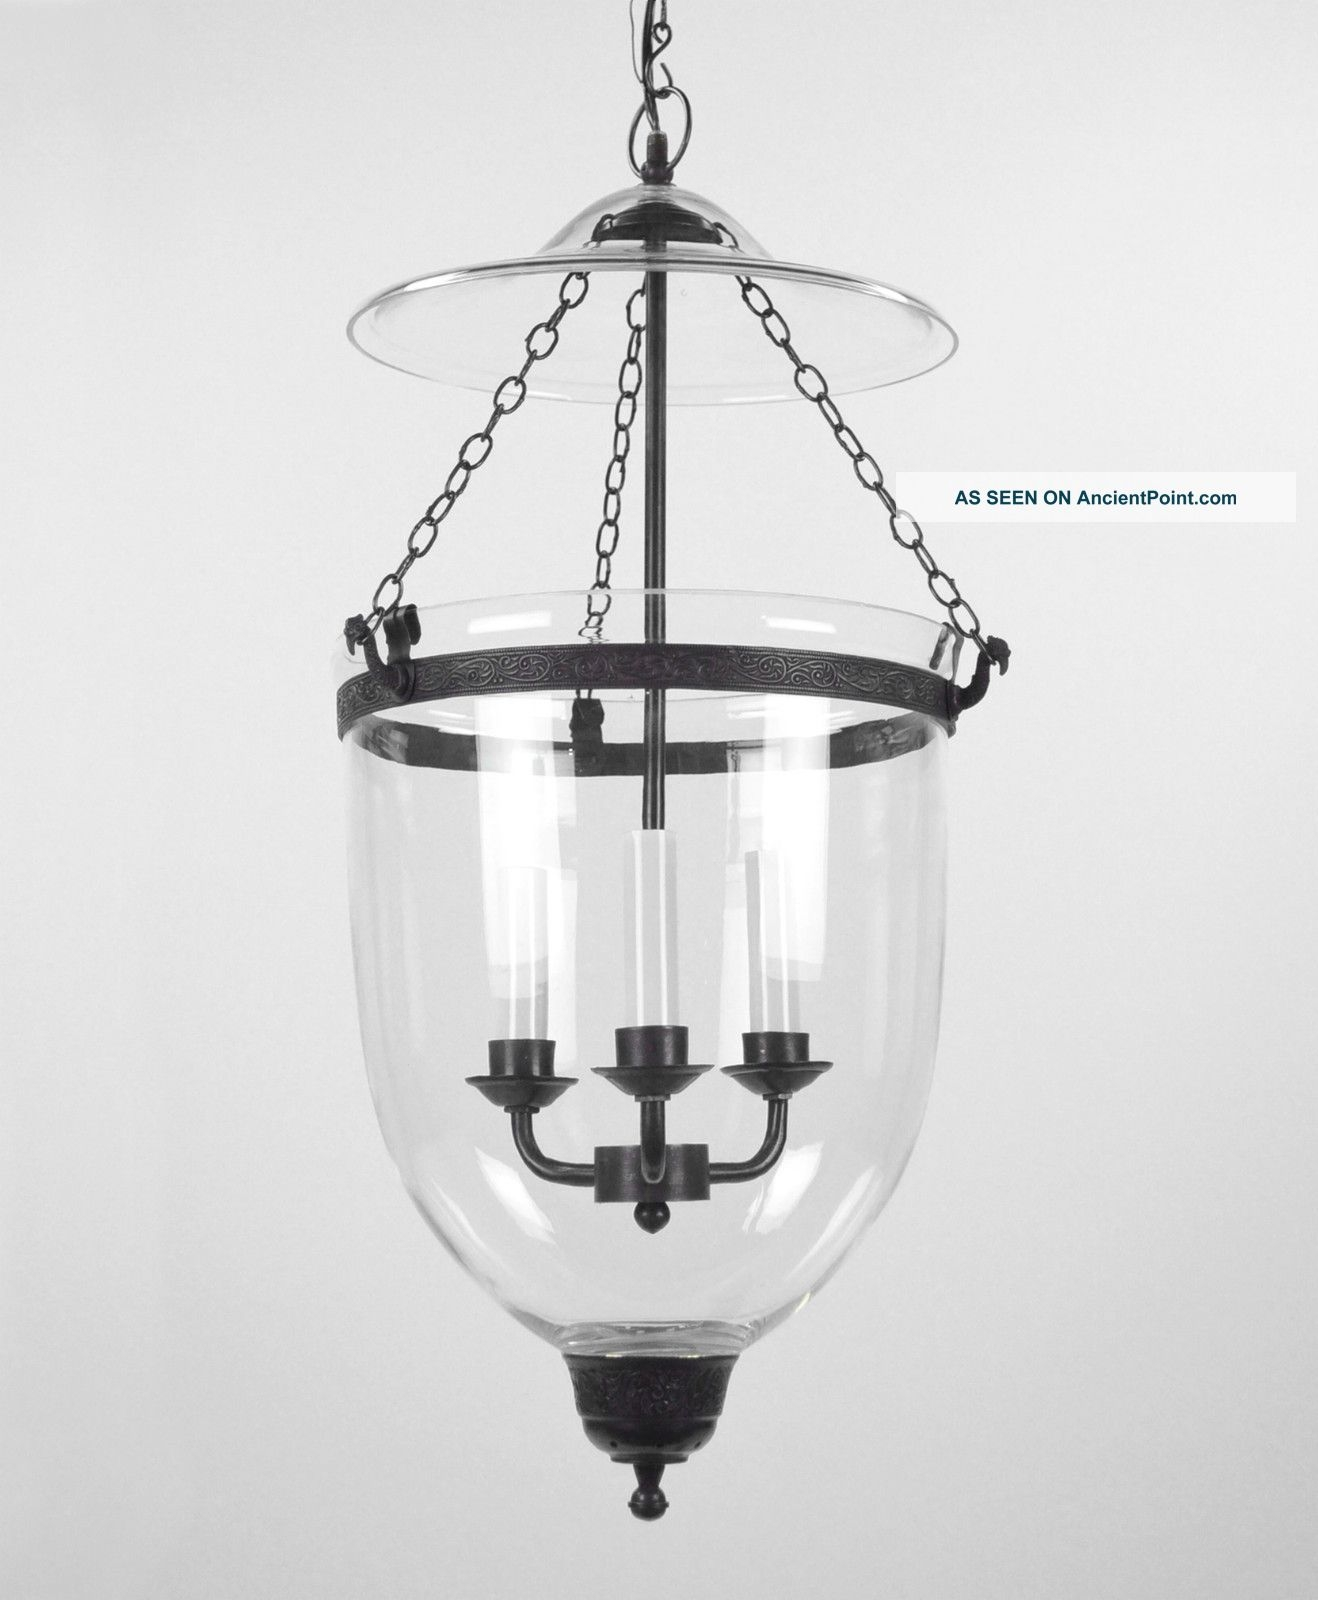 Large Bell Jar Light Chandelier Pendant Lantern Glass Colonial Old Pertaining To Antique Looking Chandeliers (#7 of 12)